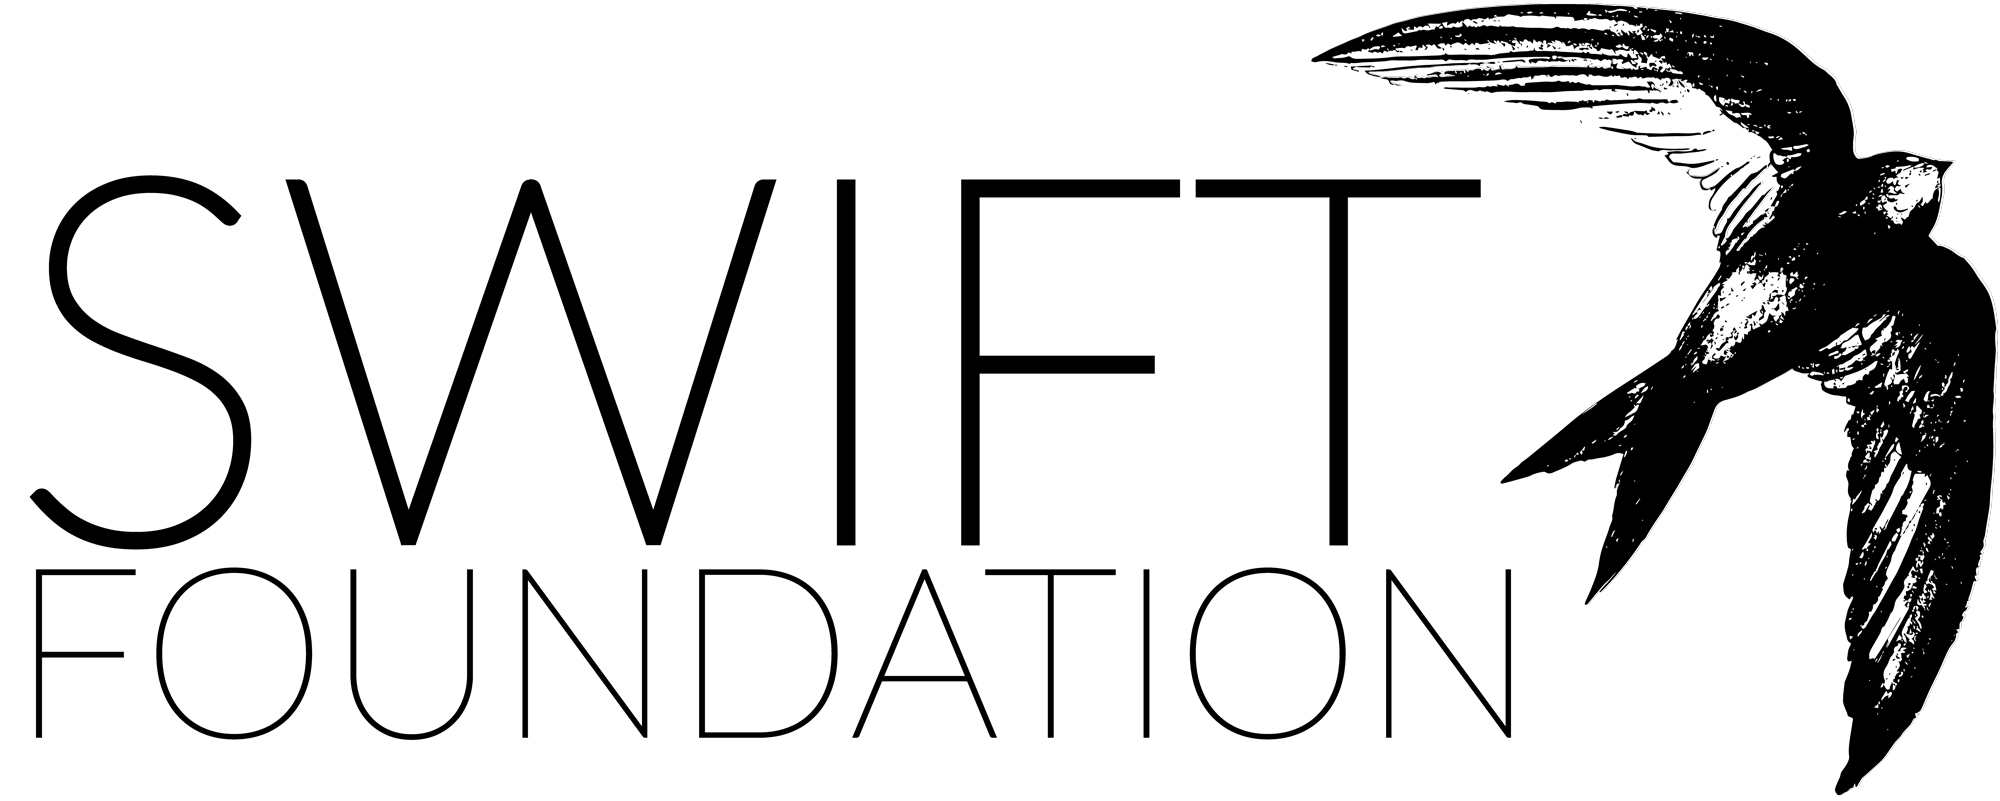 Swift Foundation Joins Divest-Invest